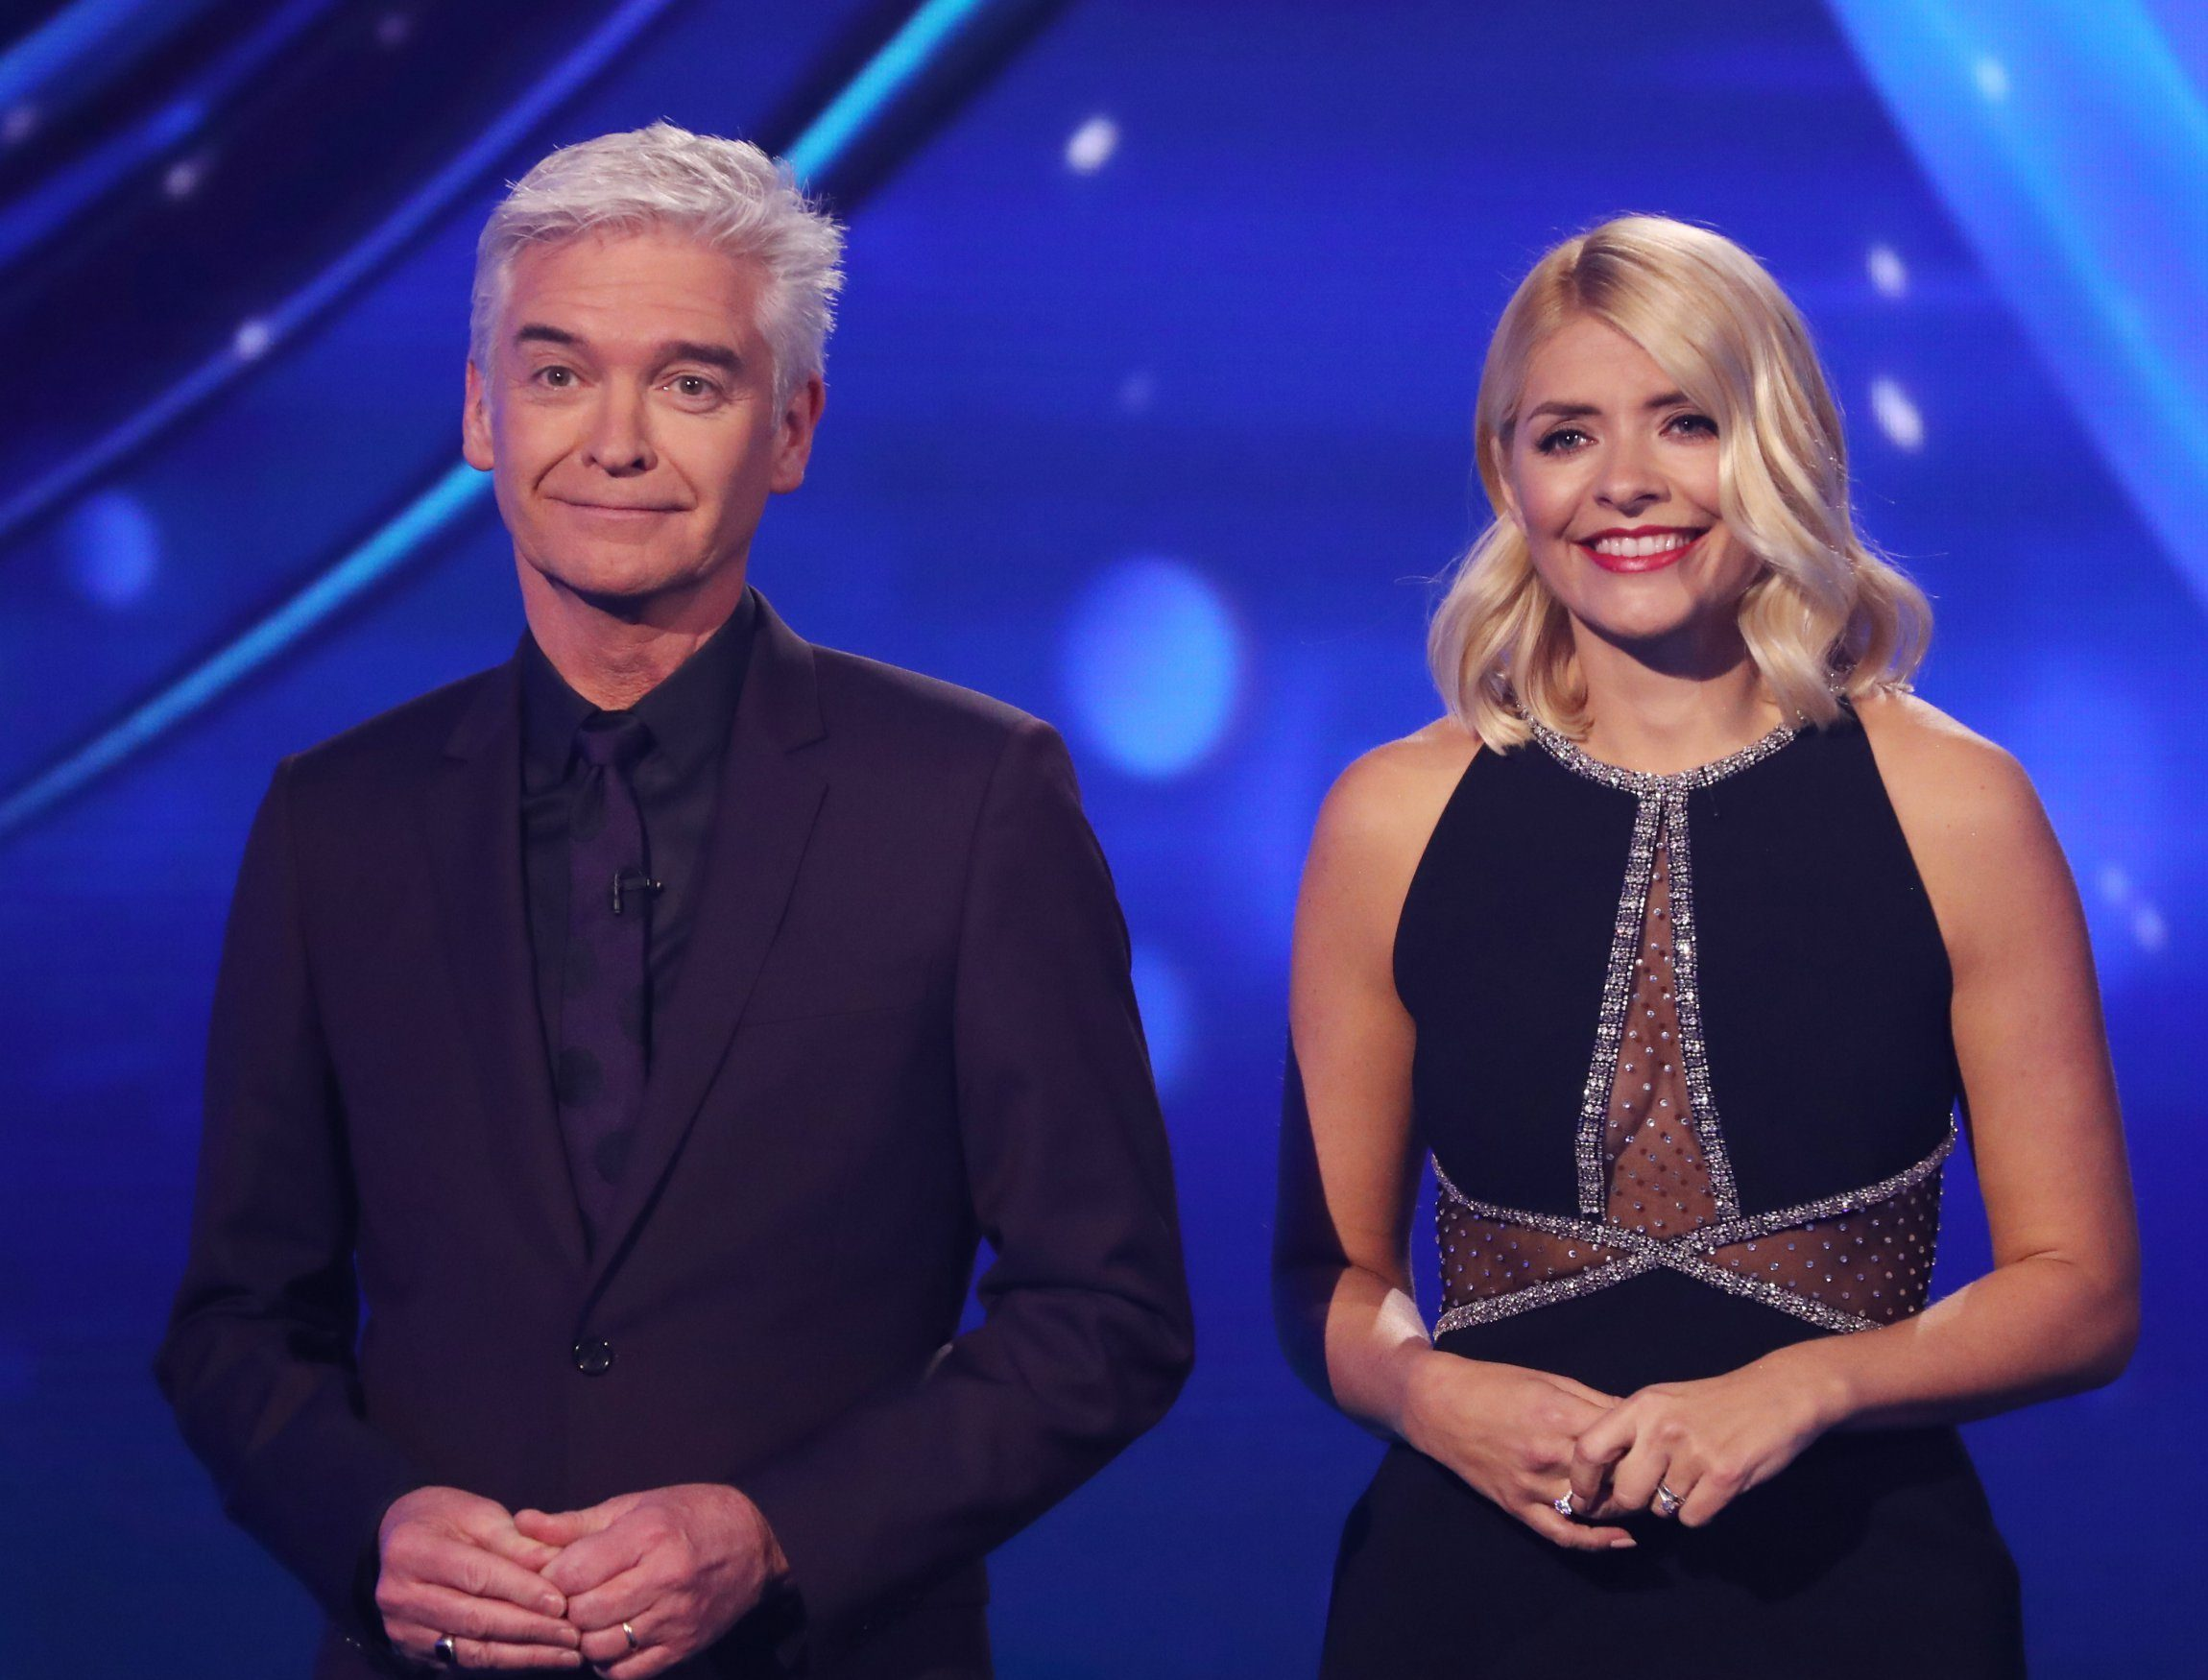 Editorial use only Mandatory Credit: Photo by Matt Frost/ITV/REX (10067937bq) Phillip Schofield and Holly Willoughby 'Dancing on Ice' TV show, Series 11, Episode 3, Hertfordshire, UK - 20 Jan 2019